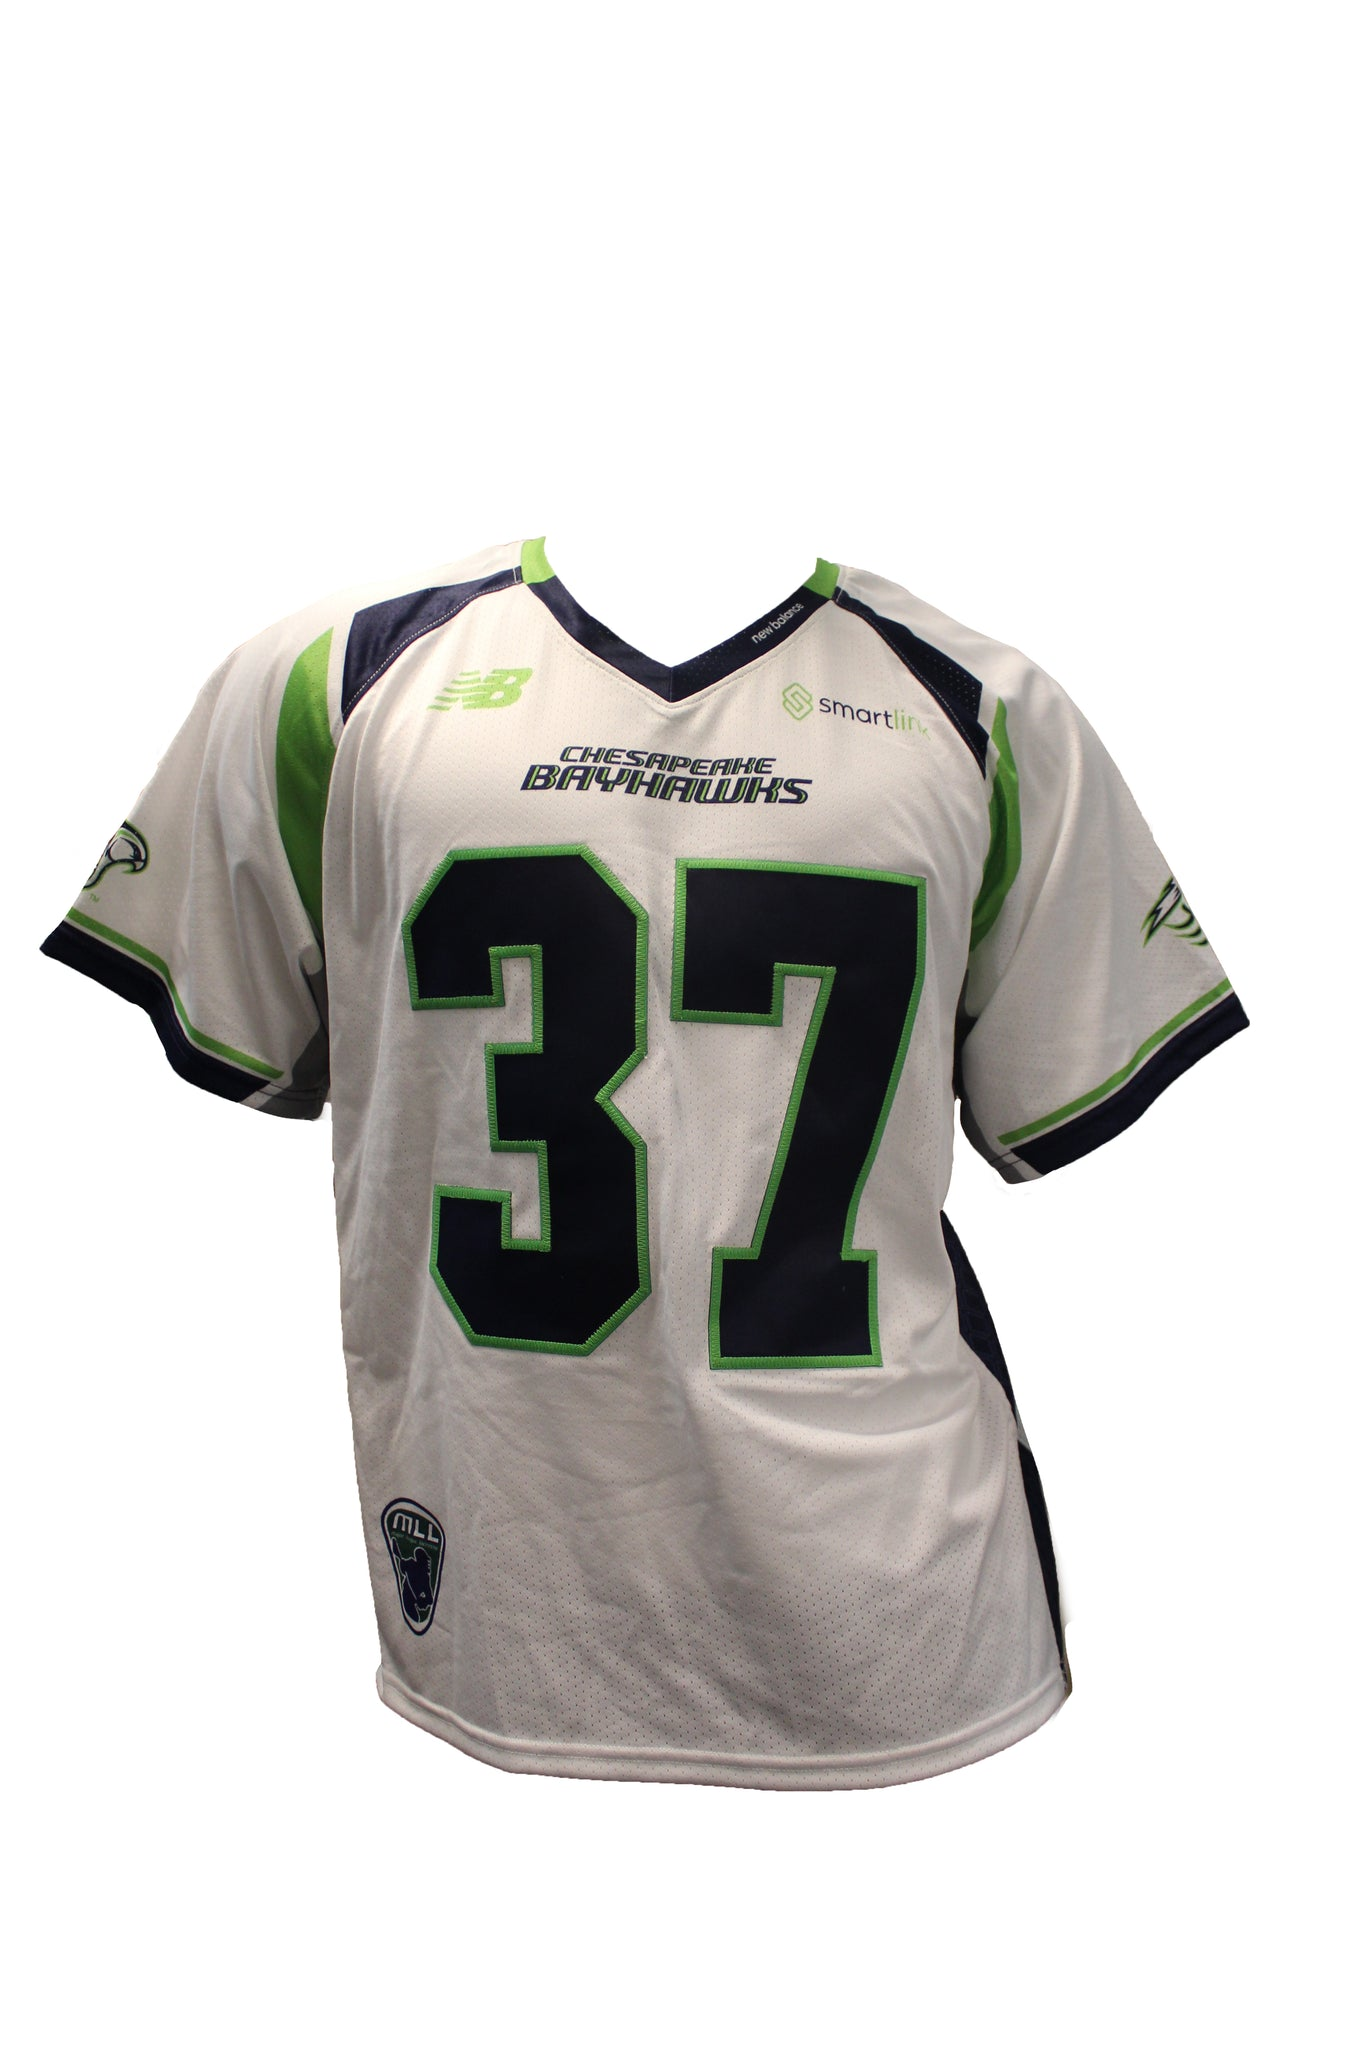 2018 Ben Williams Game-Worn White Jersey